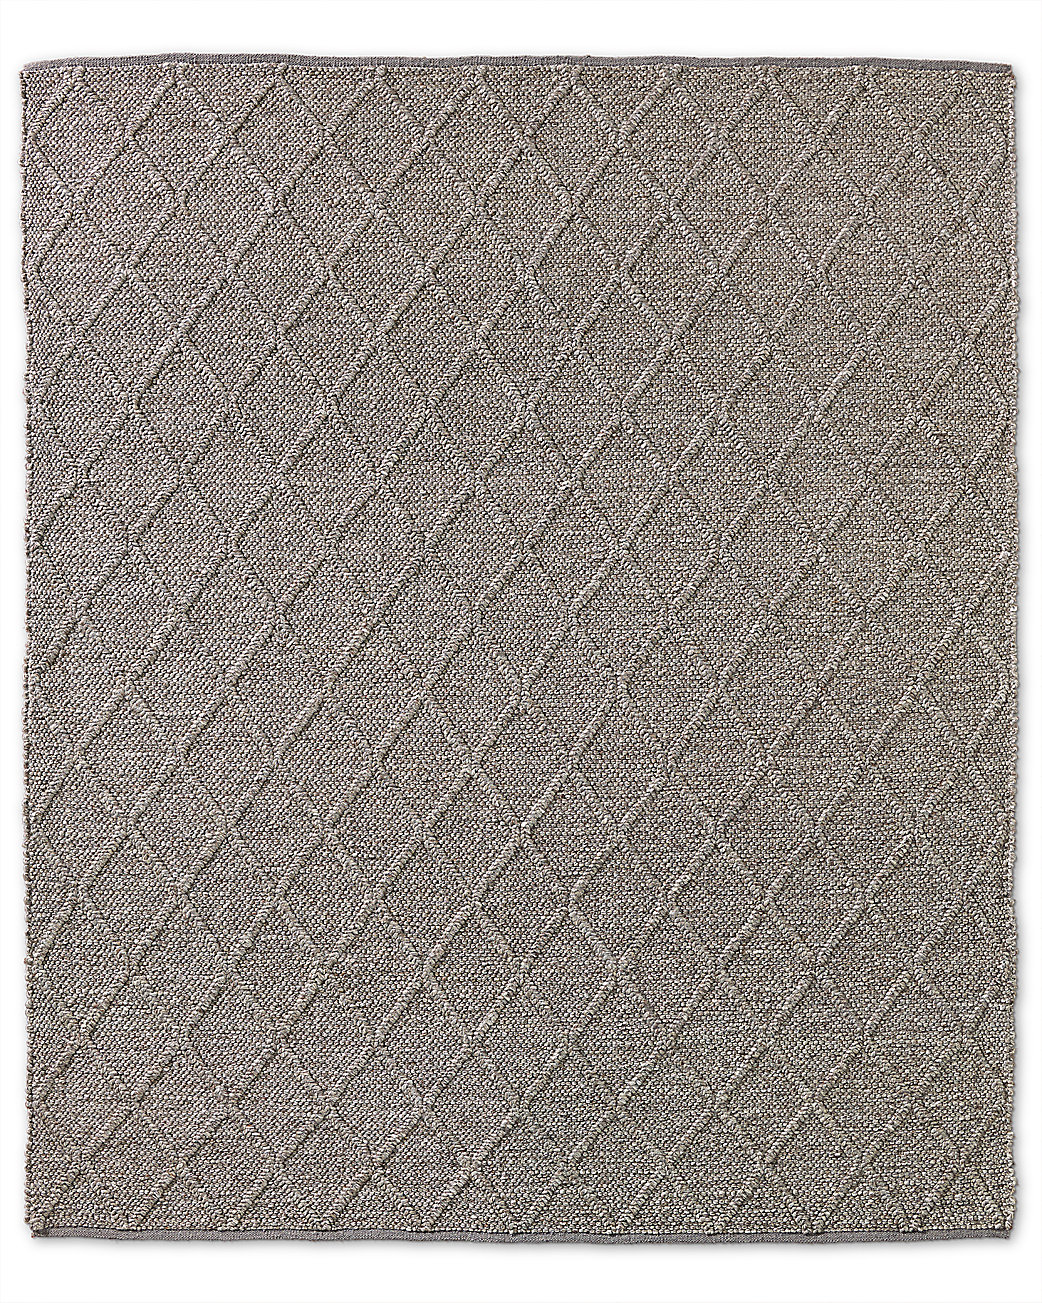 Braided Diamante Rug - Mocha